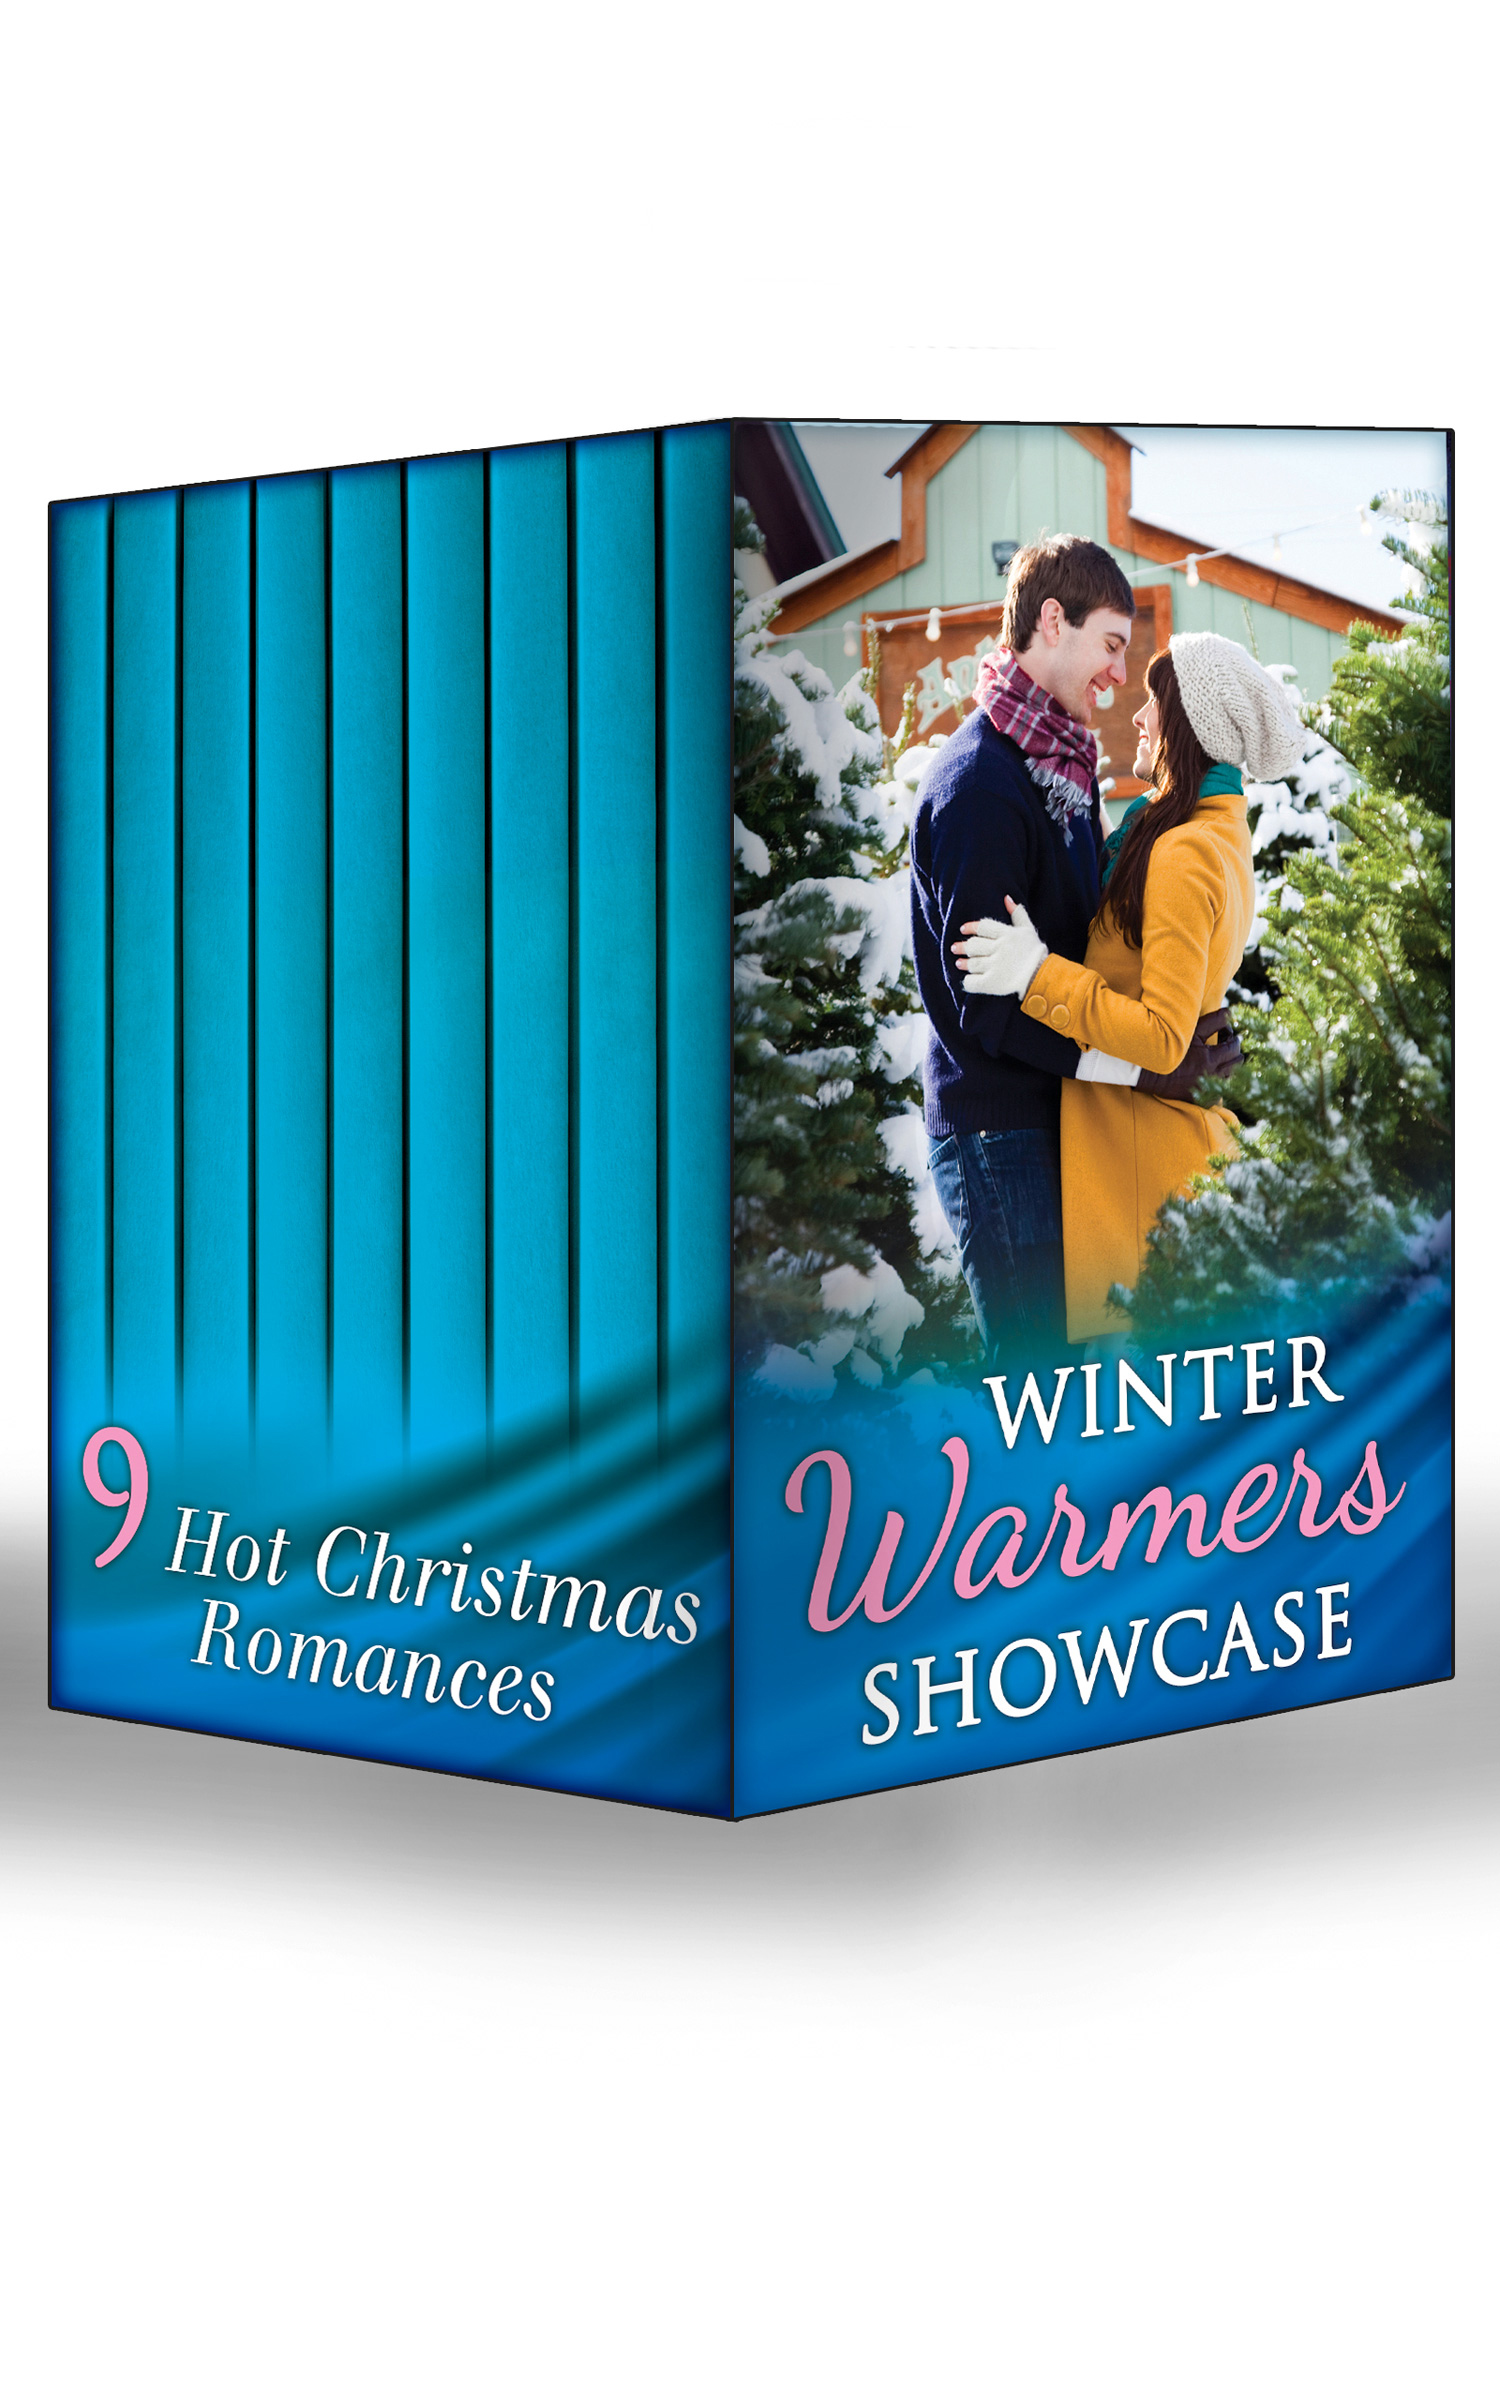 Winter Warmers Showcase